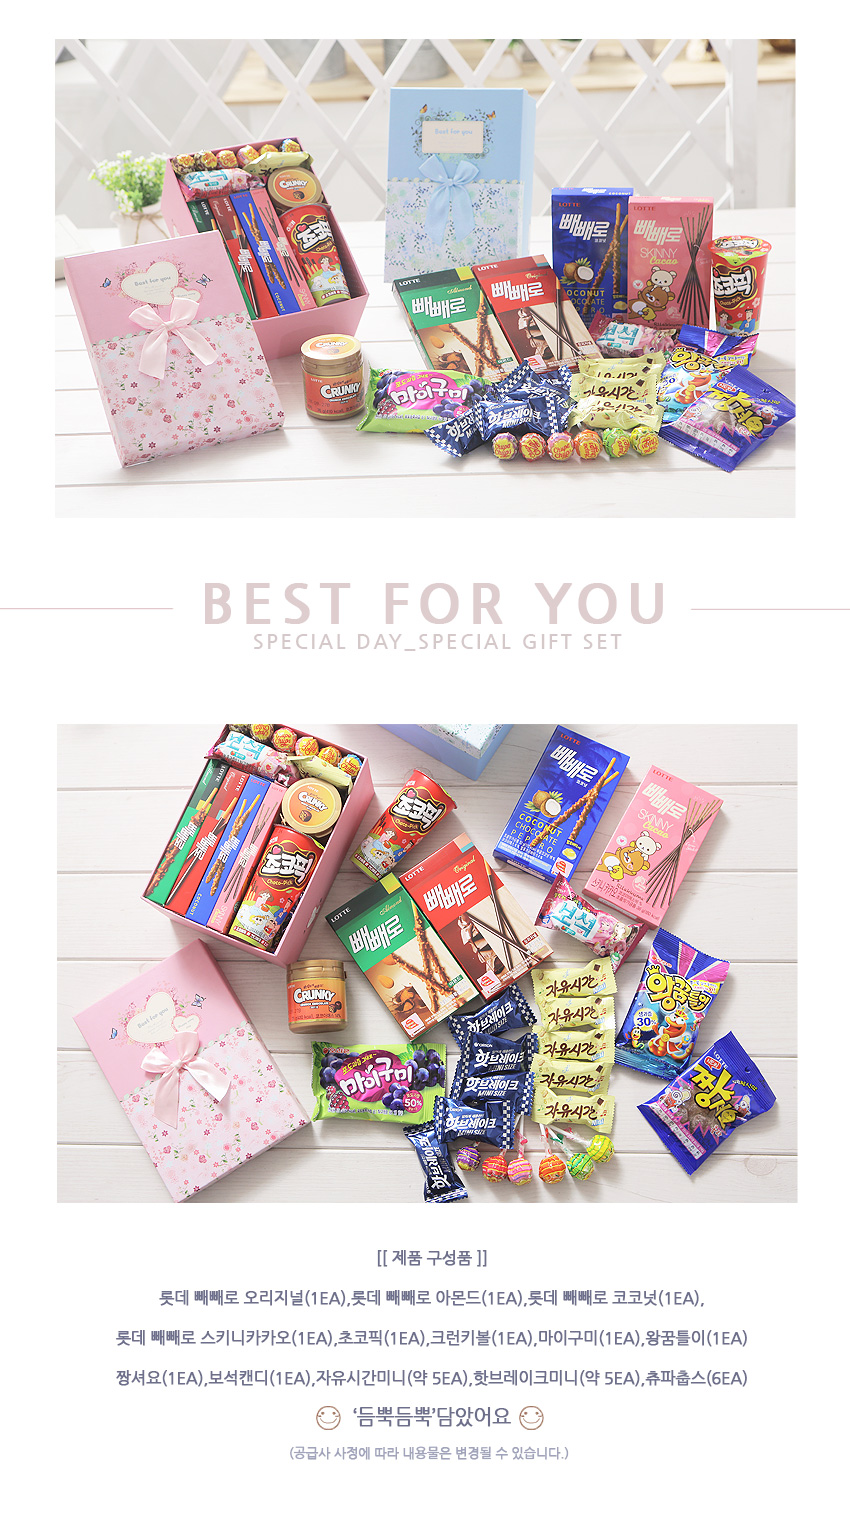 [ Lotte ] Best For You Rectangular Box(Large)